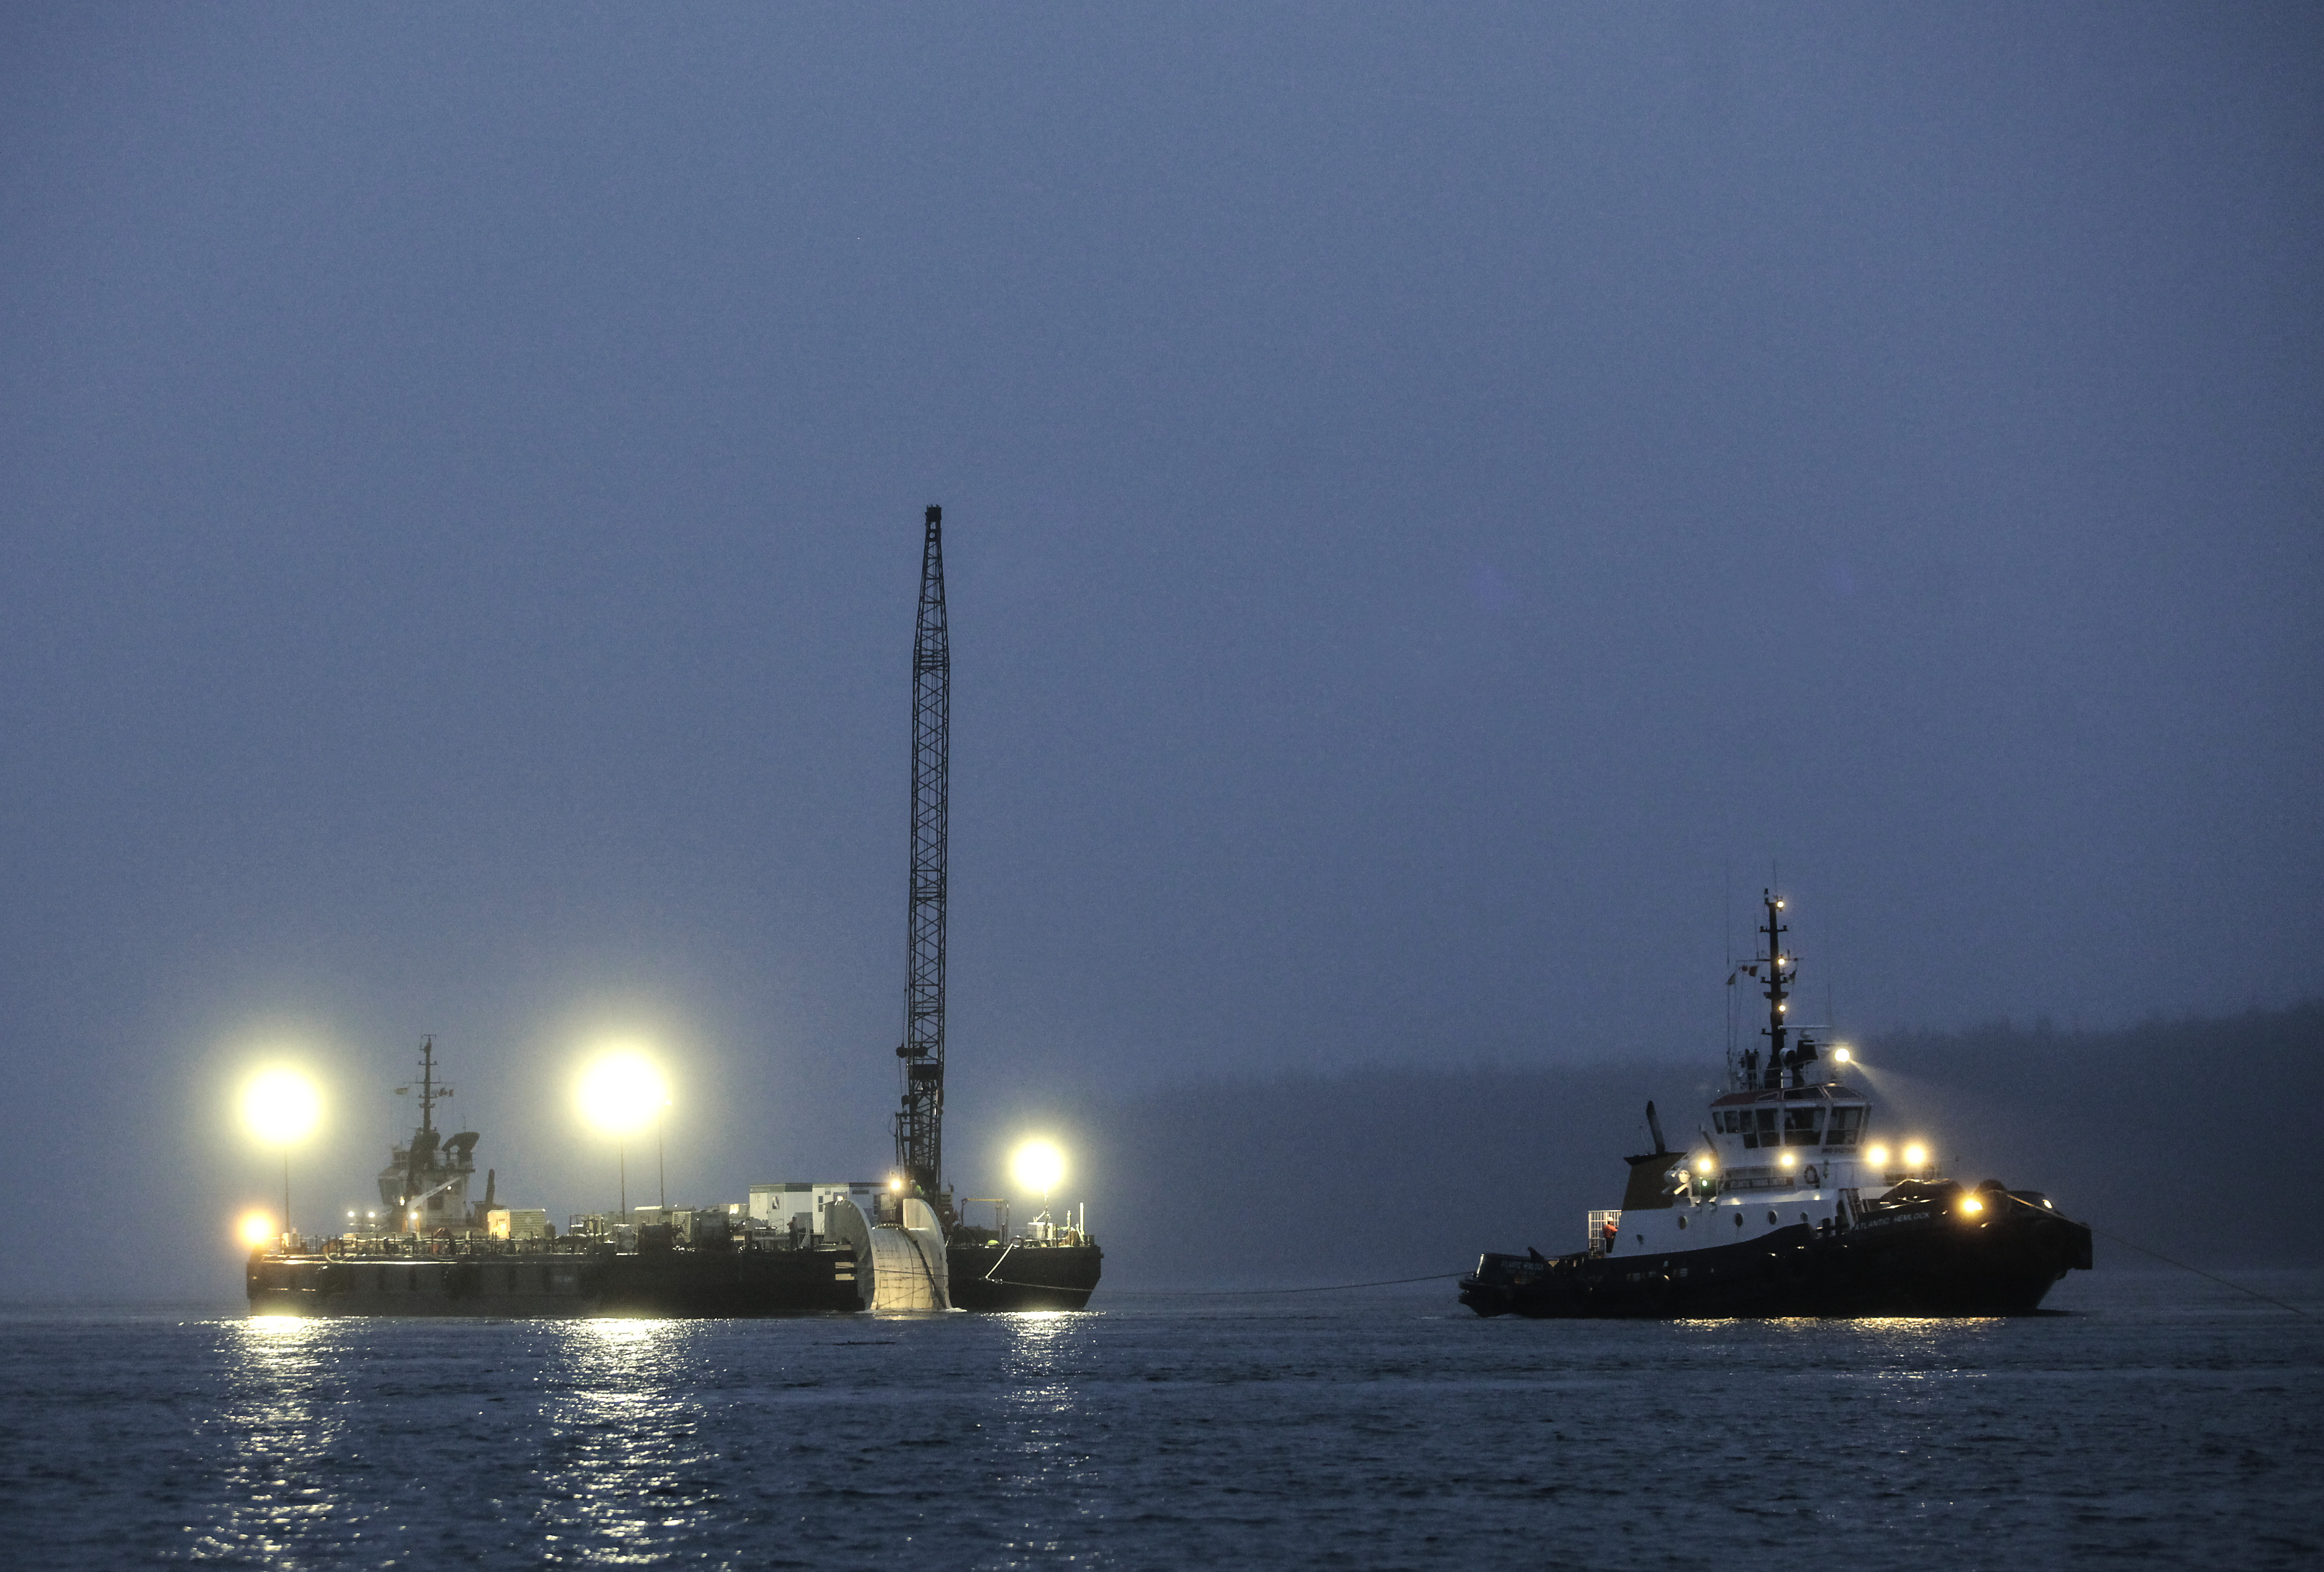 Cape Sharp Tidal Installs Subsea Connector Cable and Launches Scotia ...